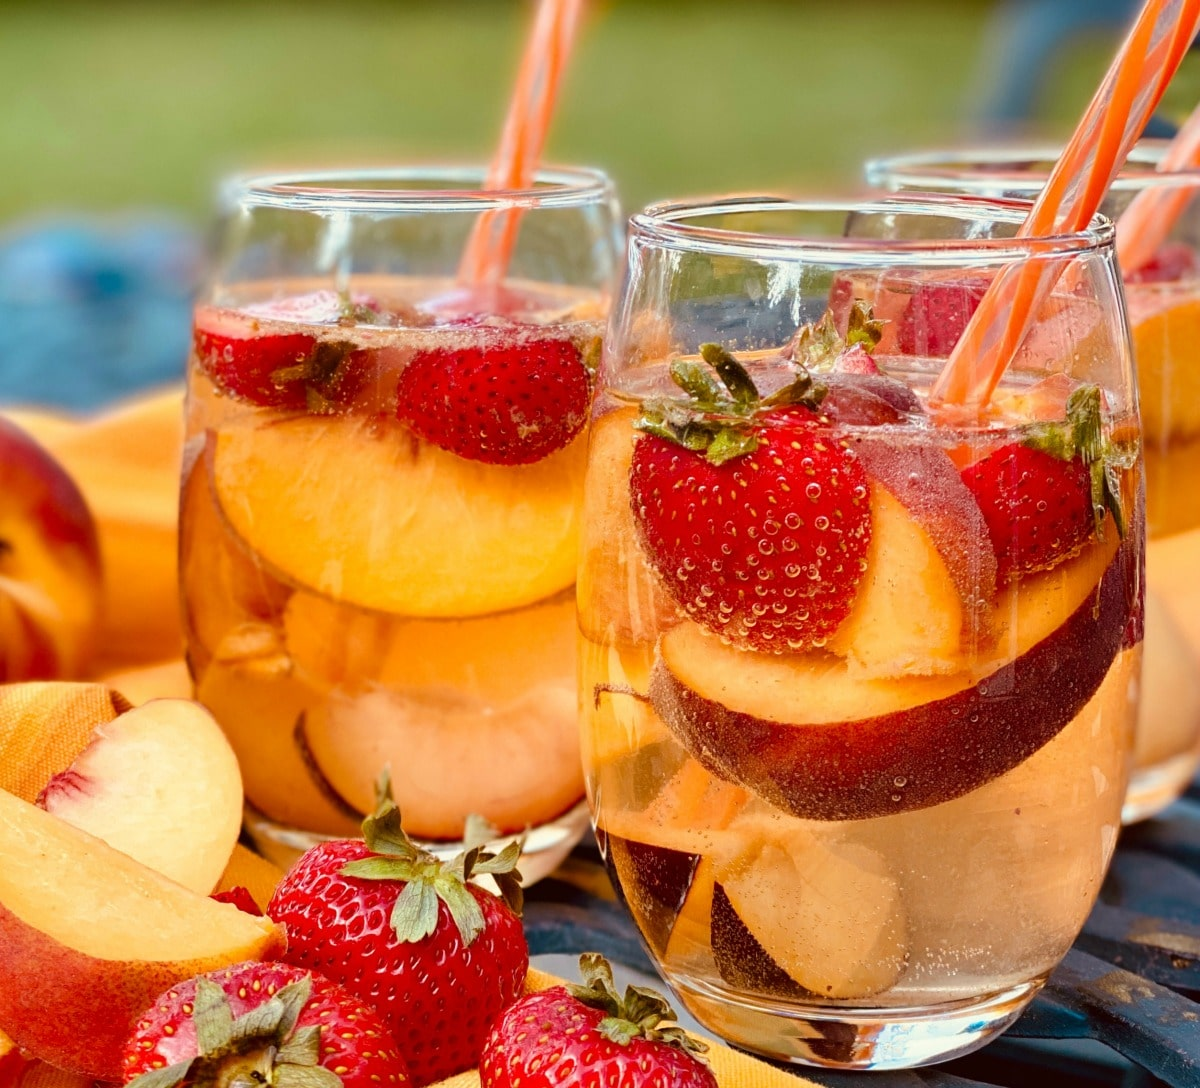 Stemless wine glasses filled with sangria, fresh fruits and straws